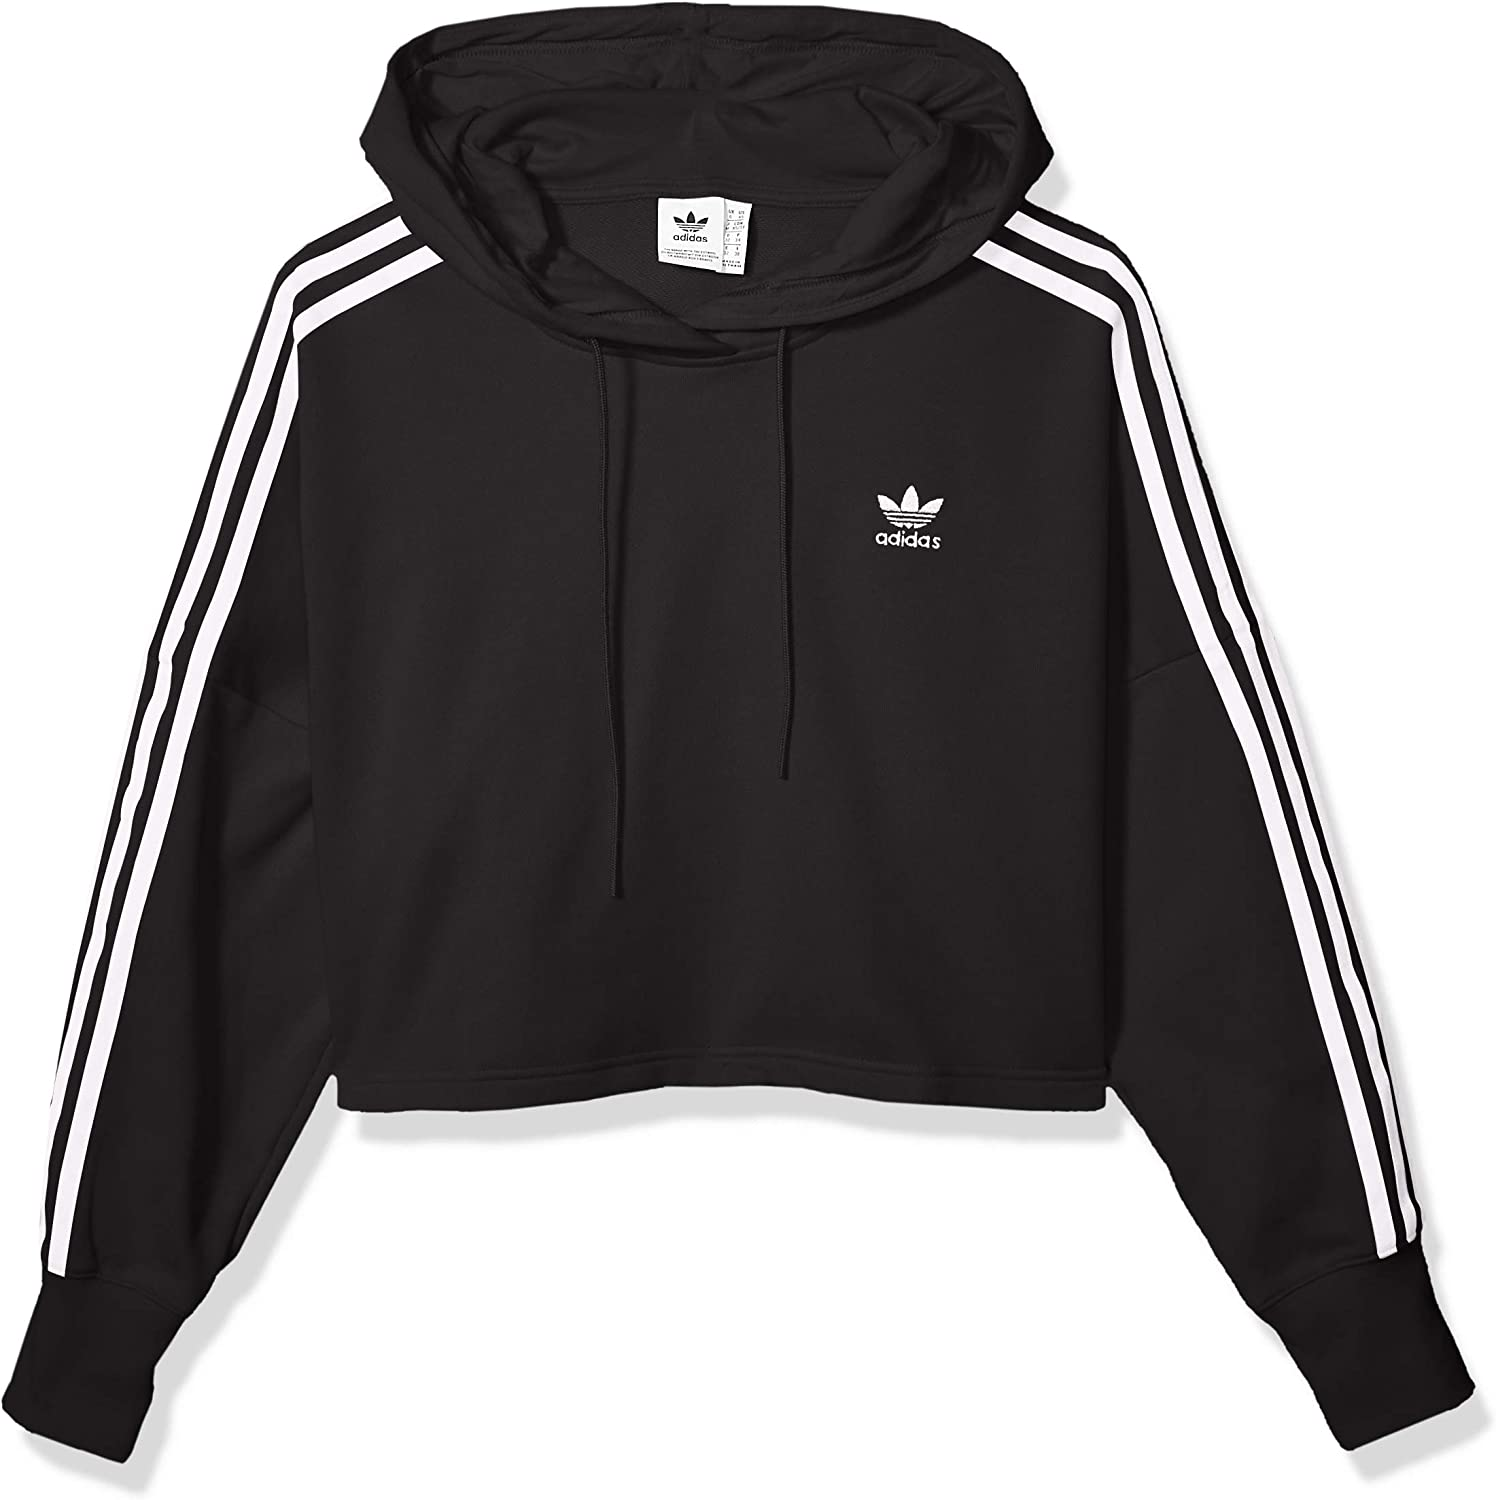 adidas Originals Women's Cropped Sweatshirt